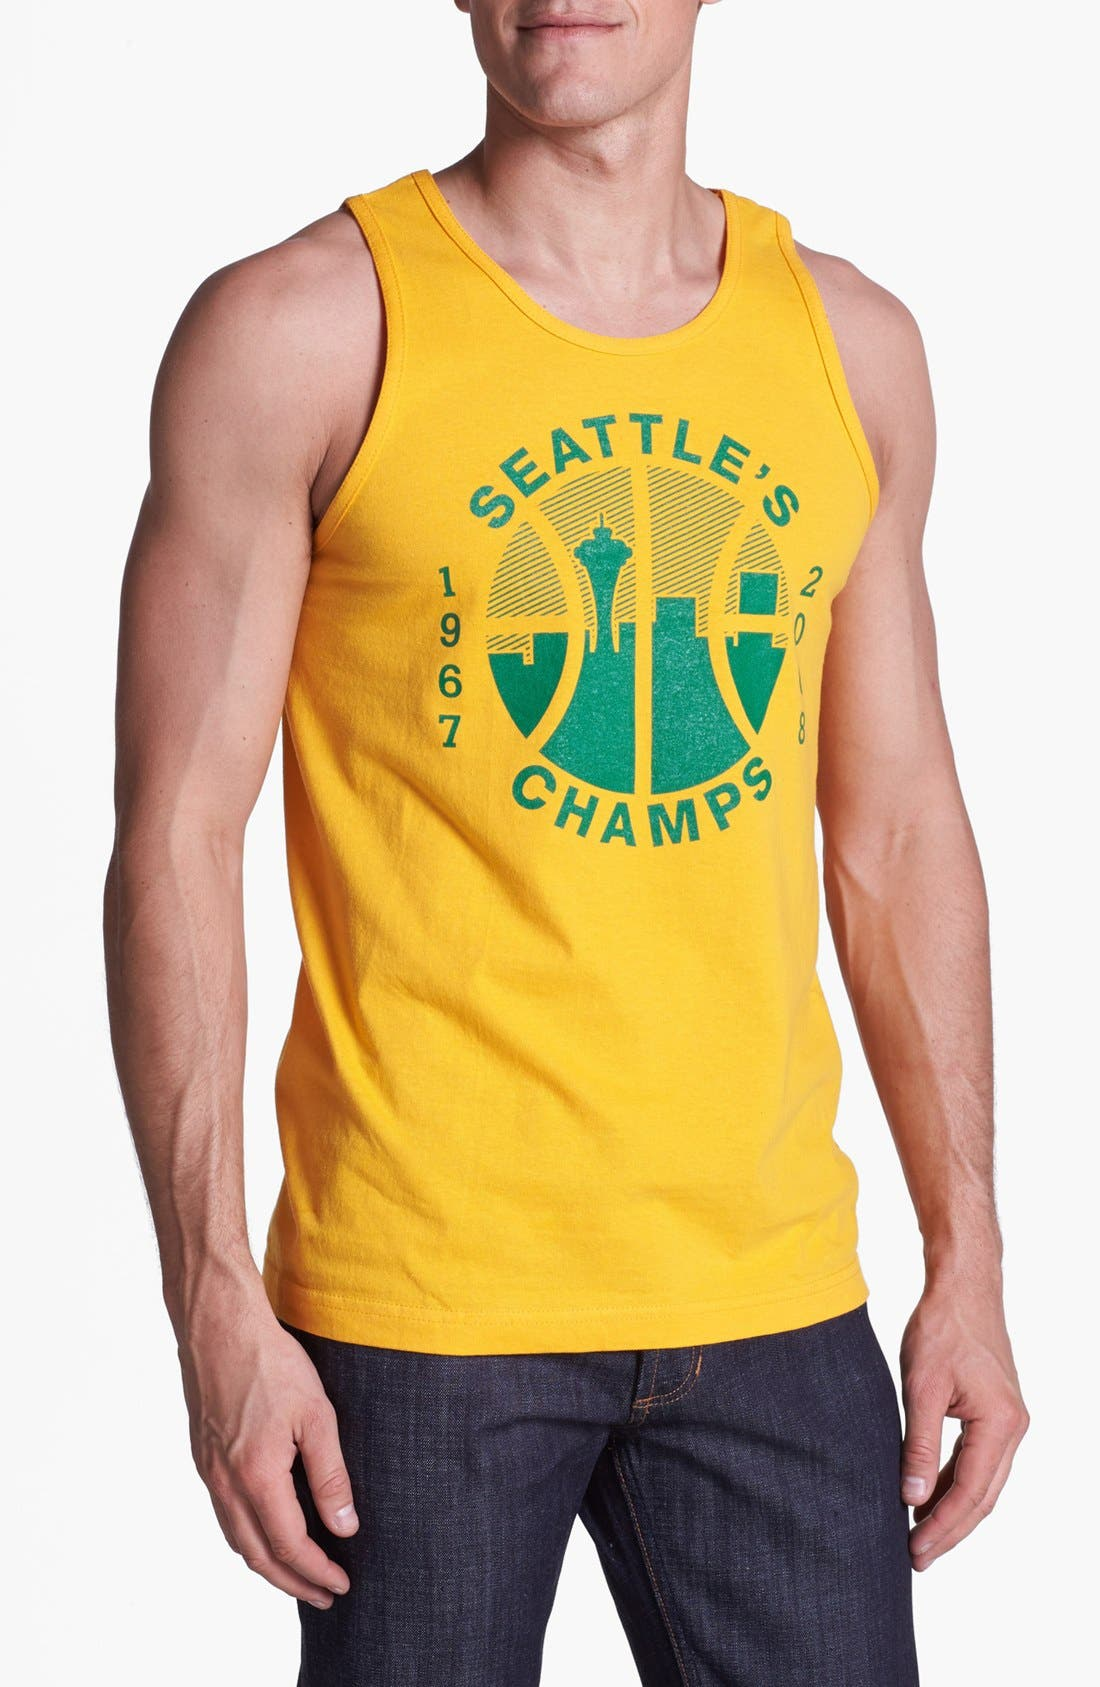 Alternate Image 1 Selected - Casual Industrees 'Seattle Champs' Tank Top